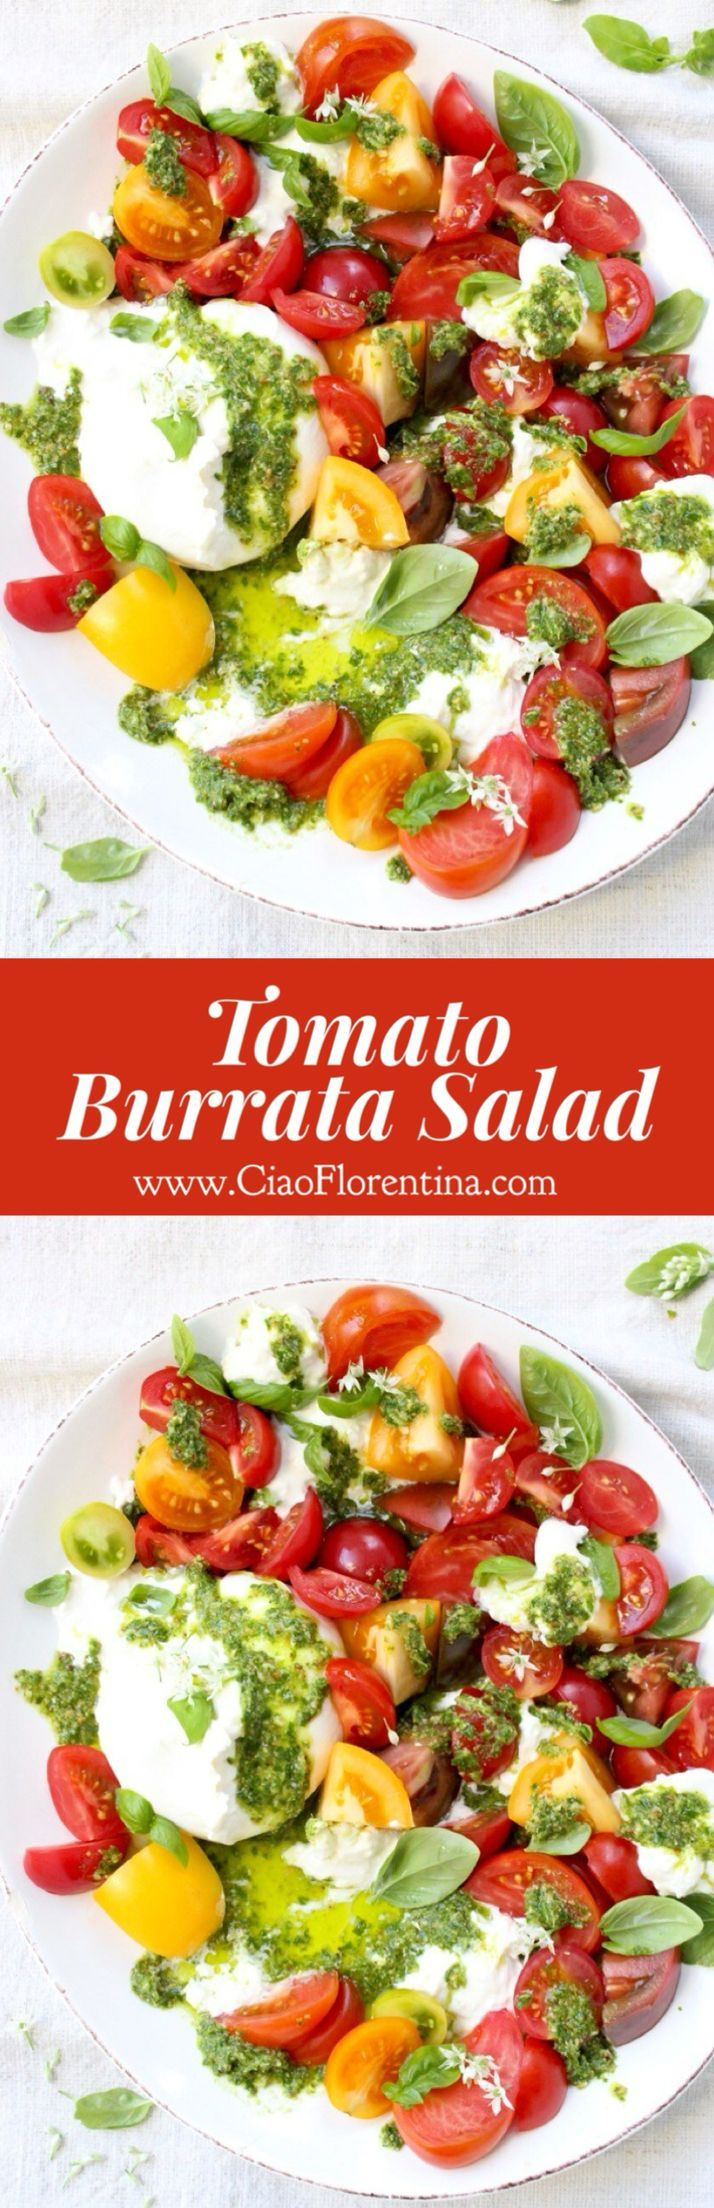 Tomato Burrata Salad Recipe, Burrata Caprese with Heirloom Tomatoes and Basil Pesto | CiaoFlorentina.com @CiaoFlorentina